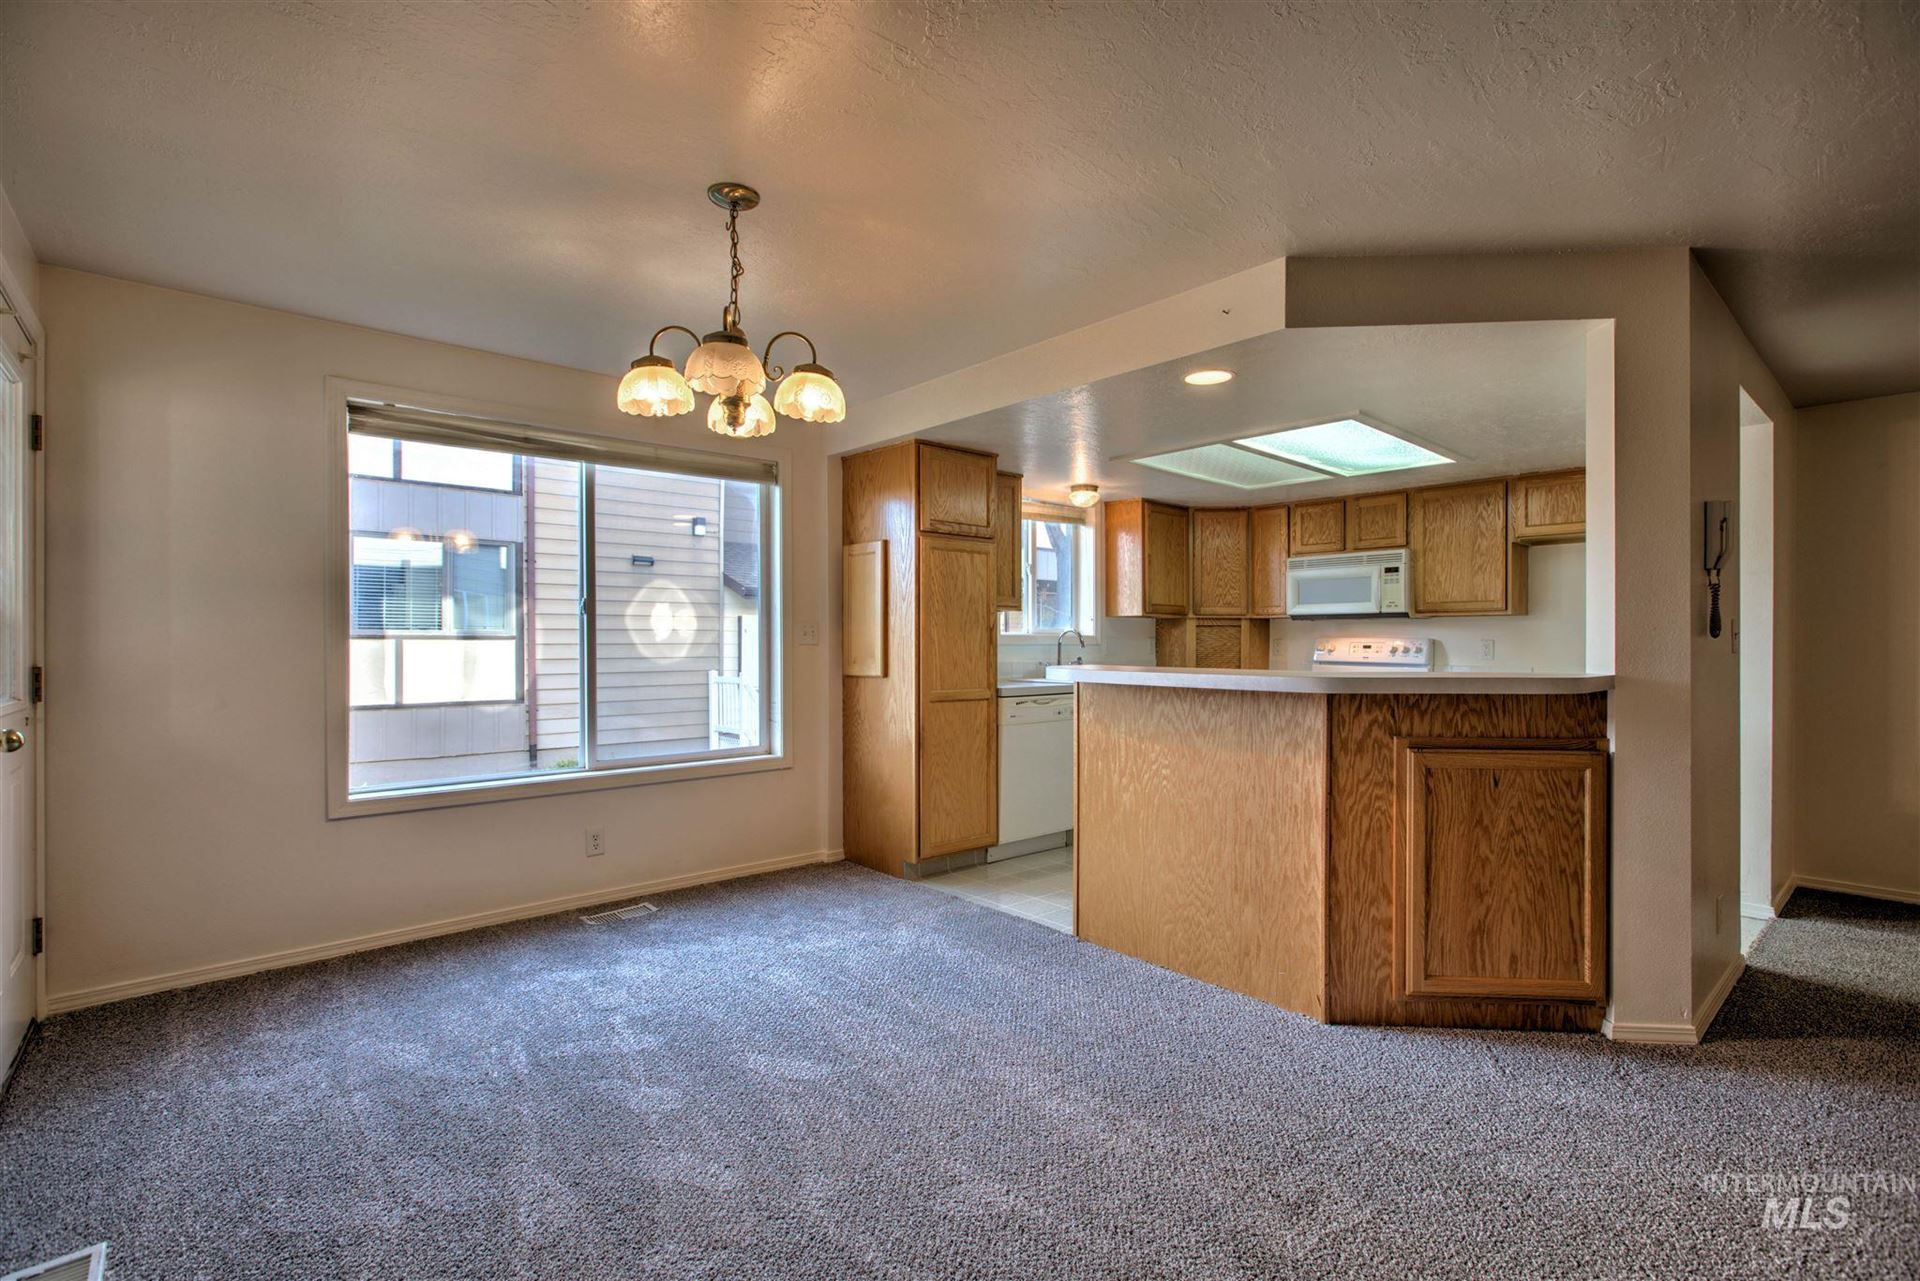 Photo of 351 Elm St N #4, Twin Falls, ID 83301 (MLS # 98799008)